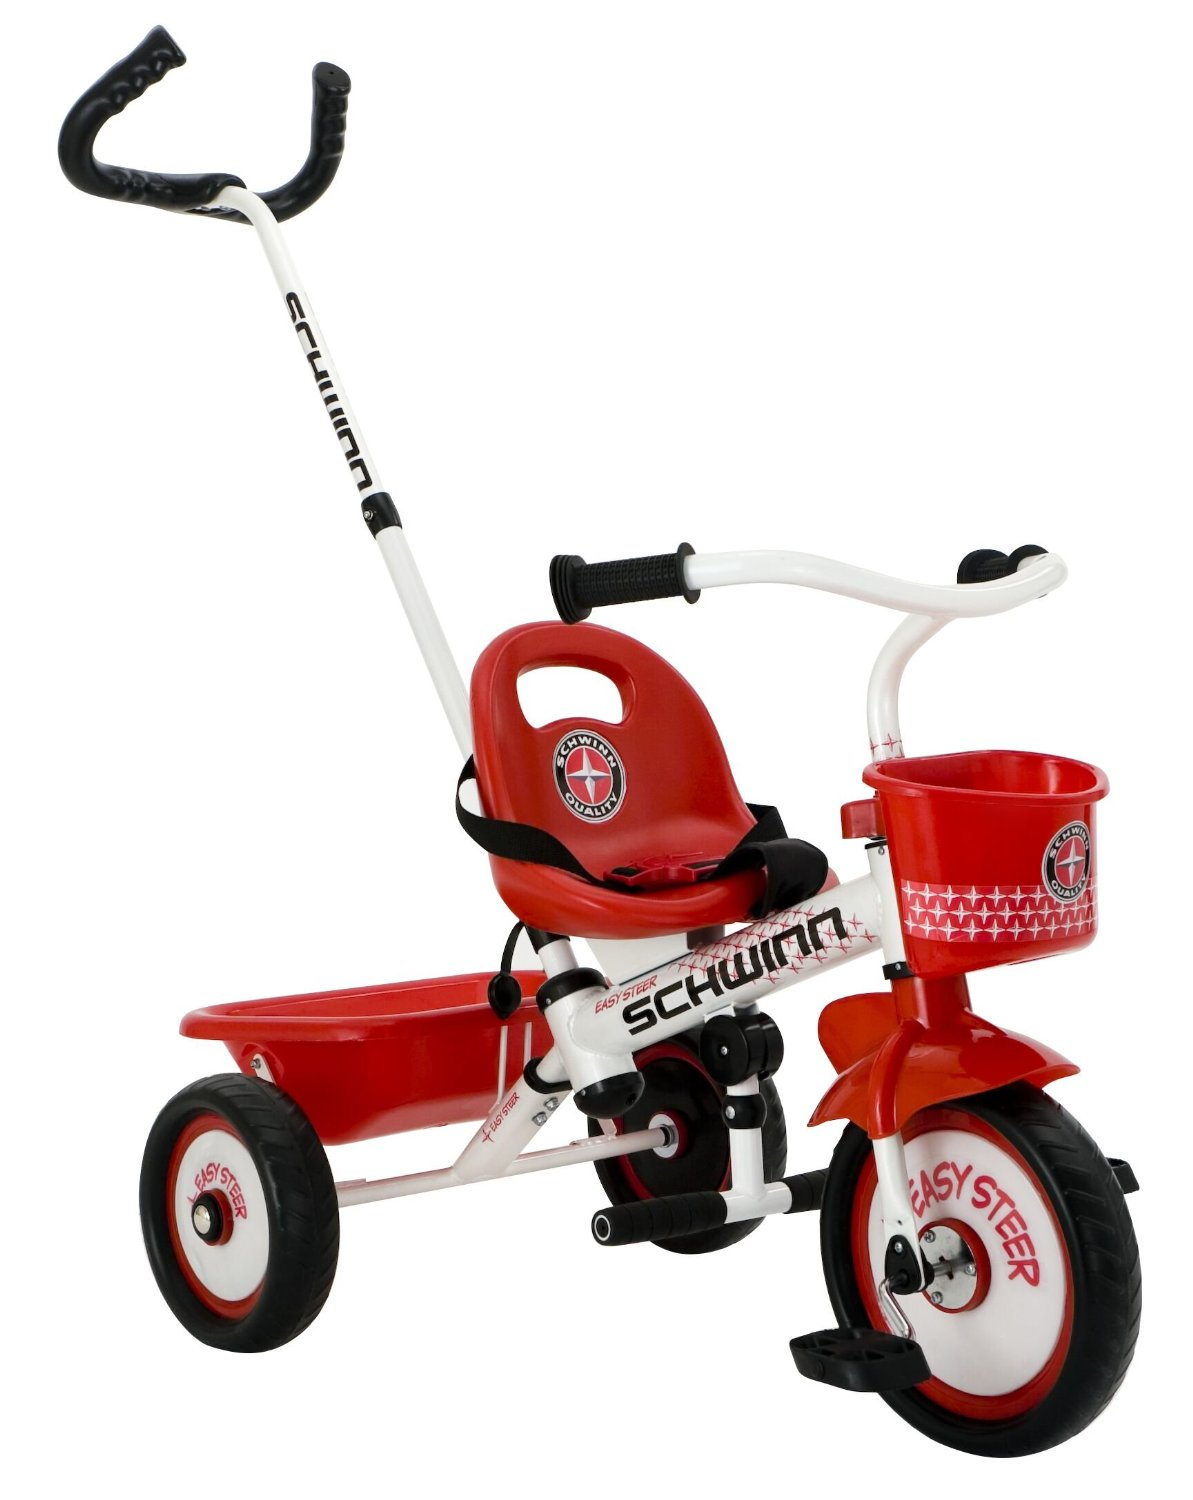 schwinn-easy-steer-tricycle-toddlers-trike